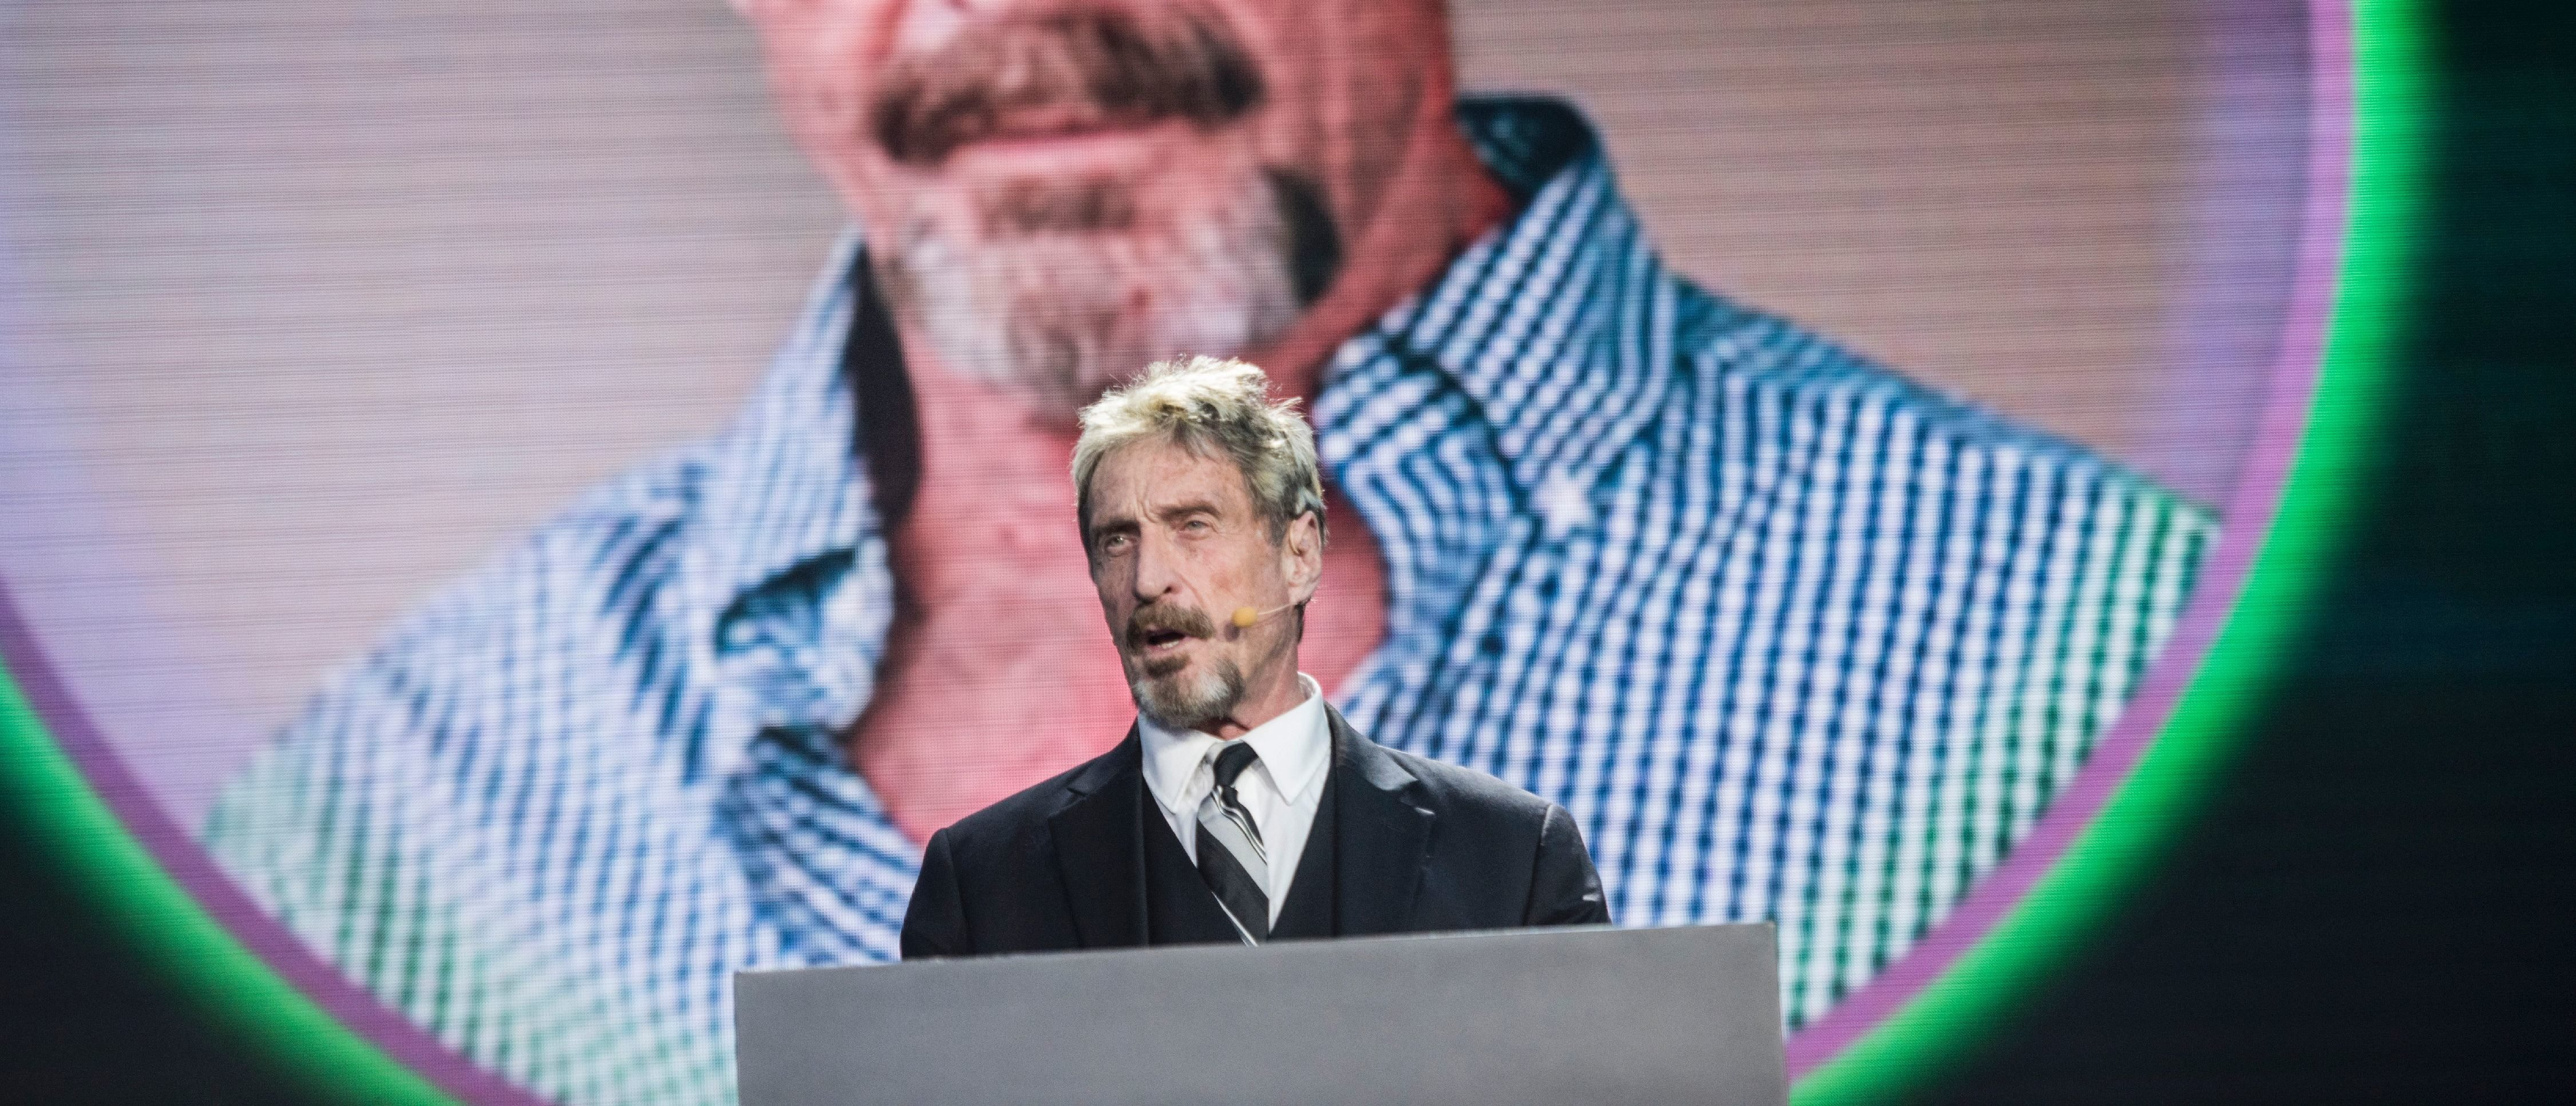 John McAfee On Trump, And What He's Going To Do If Bitcoin Doesn't Reach $1 Million